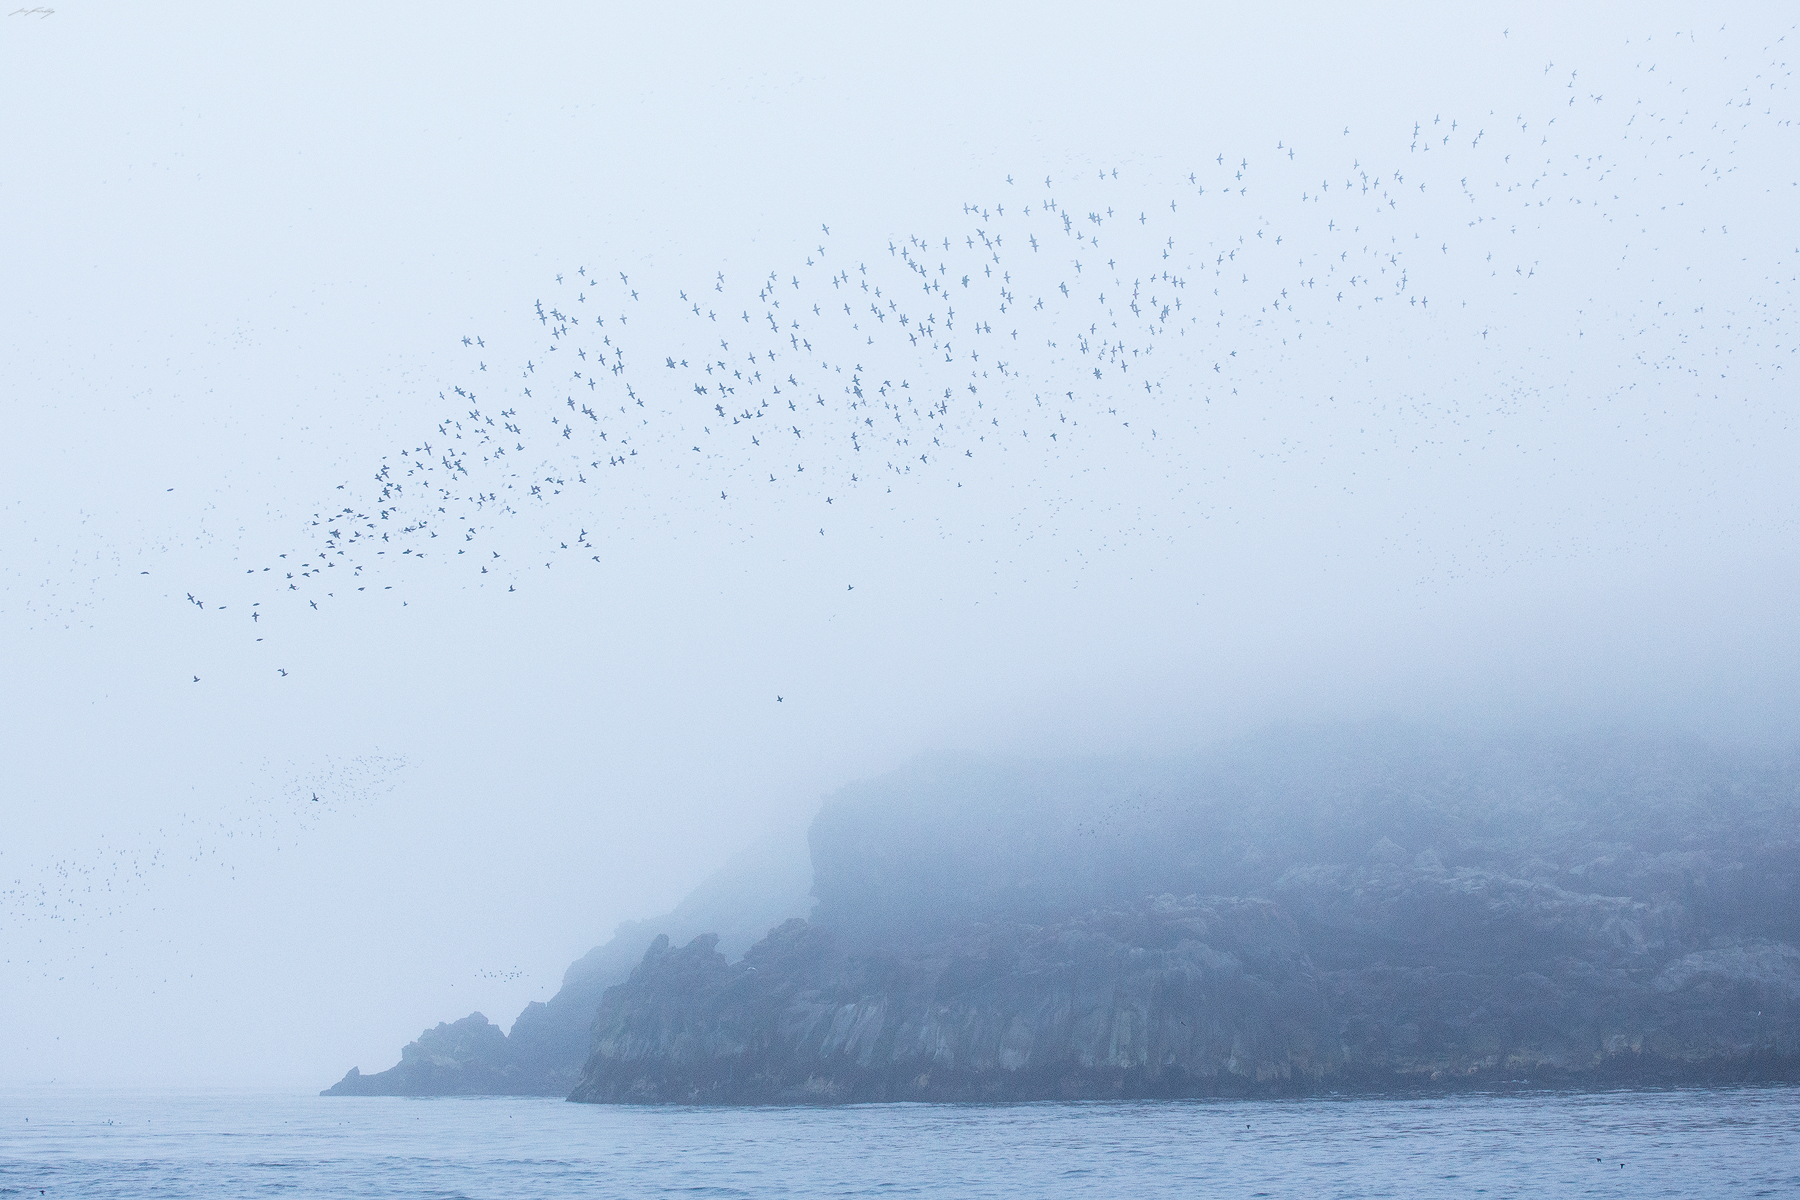 A massive flock, mostly consisting of Crested and Least Auklets liftsoff a coastal rock formation on Kiska Island. Twoexplosive eruptions in the mid 1960's released large lava flows, the cooled rock of which is now occupied by millions of nesting seabirds each spring.